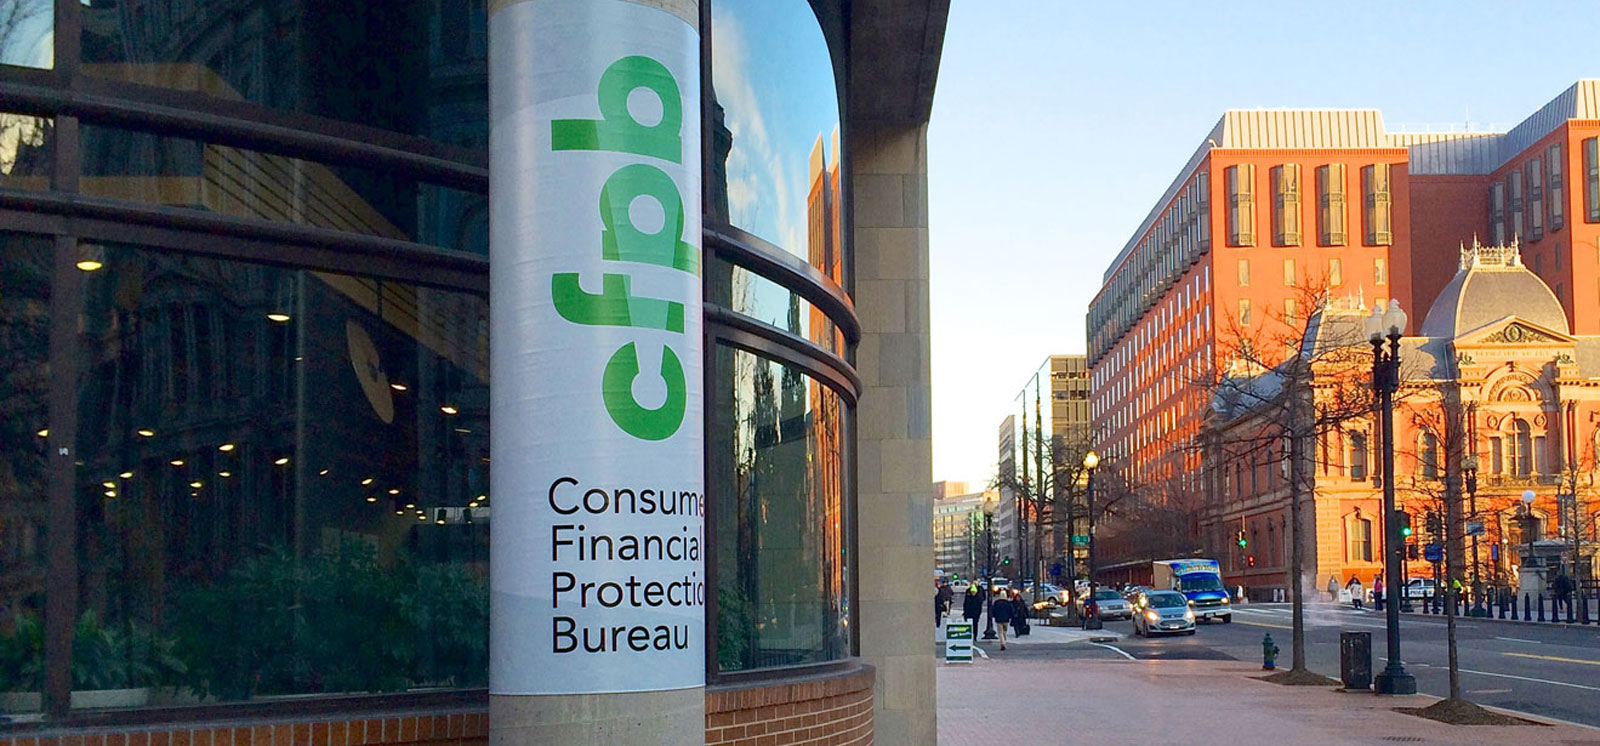 """<h4>CONSUMER PROTECTION</h4><p>We're working to get dangerous products off store shelves, to end exploitative practices, to protect private data and to ensure a level playing field in the marketplace. And we're urging Congress and federal agencies to establish new rules, institutions and policies to defend consumers from the economic and political power of special interests.</p><div><a class=""""slideshowButton"""" href=""""#consumerAnchor"""">LEARN MORE</a></div><em>Ted Eytan via Flickr, CC-BY-SA 2.0</em>"""